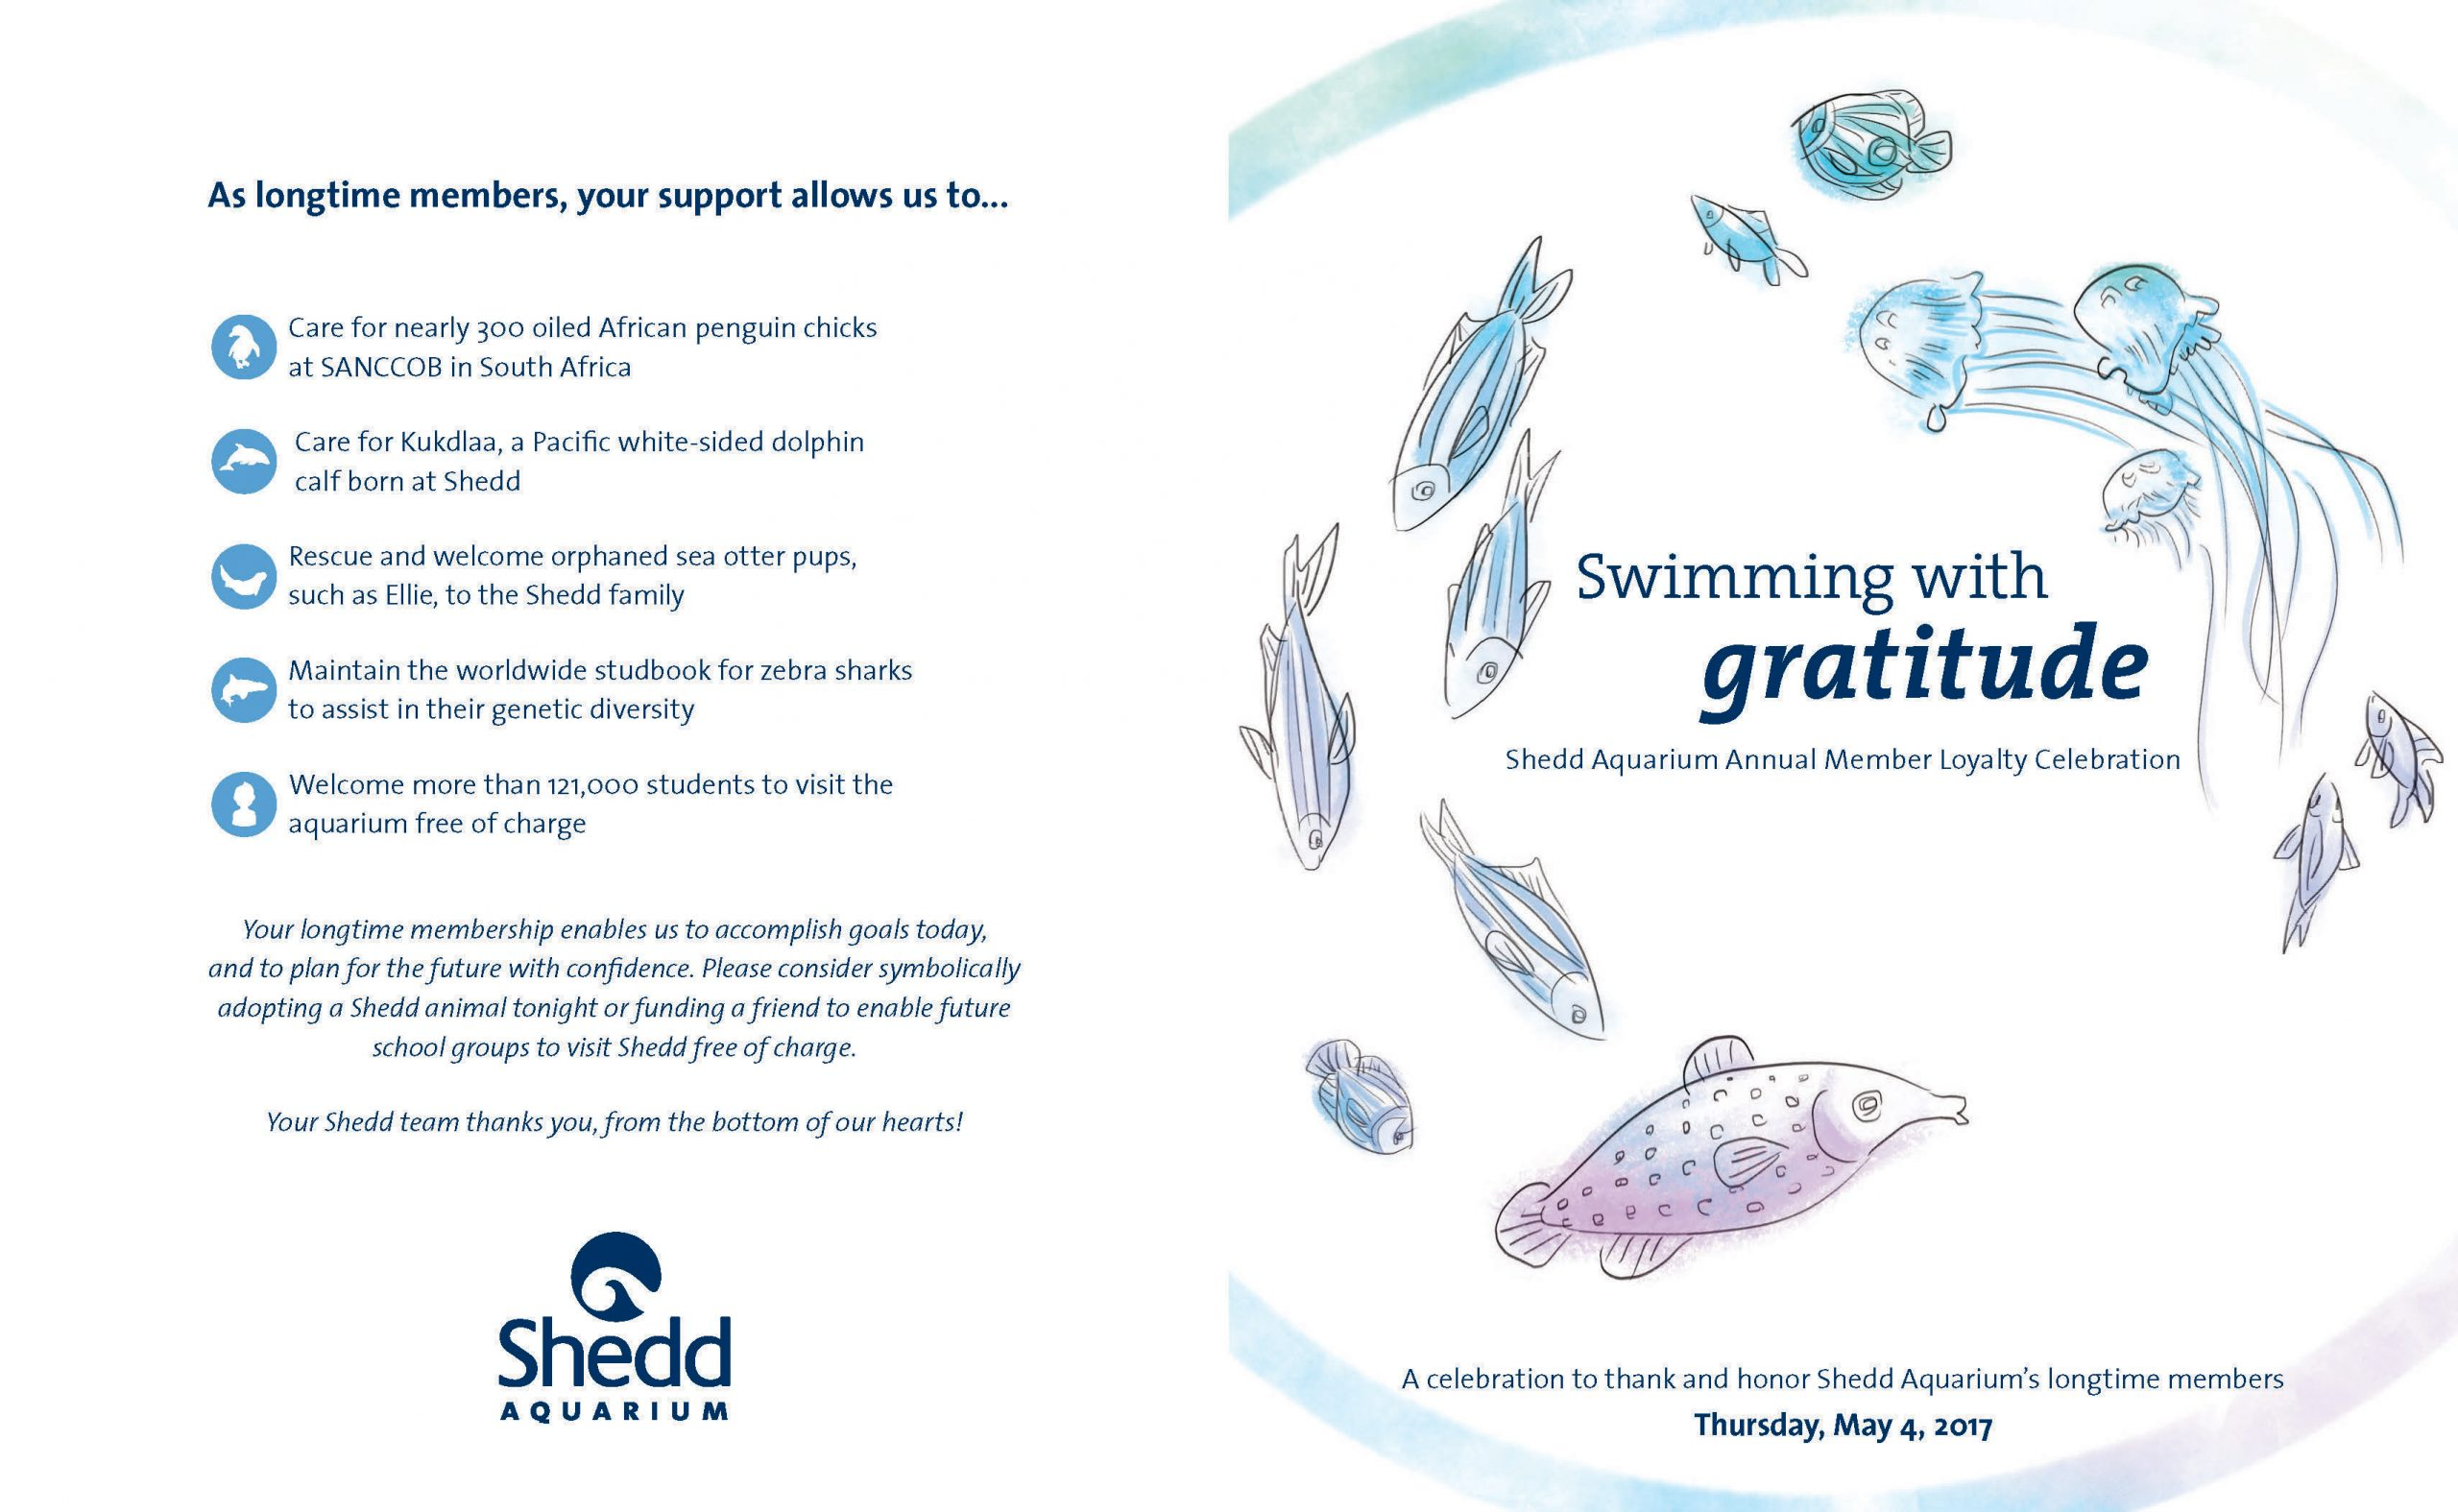 A brochure cover and back cover shown flat. On the cover is the title 'Swimming with gratitude' surrounded by fishes and jellies drawn in a sketchy style and colored in with what looks like chalk. On the left is more information about the program.